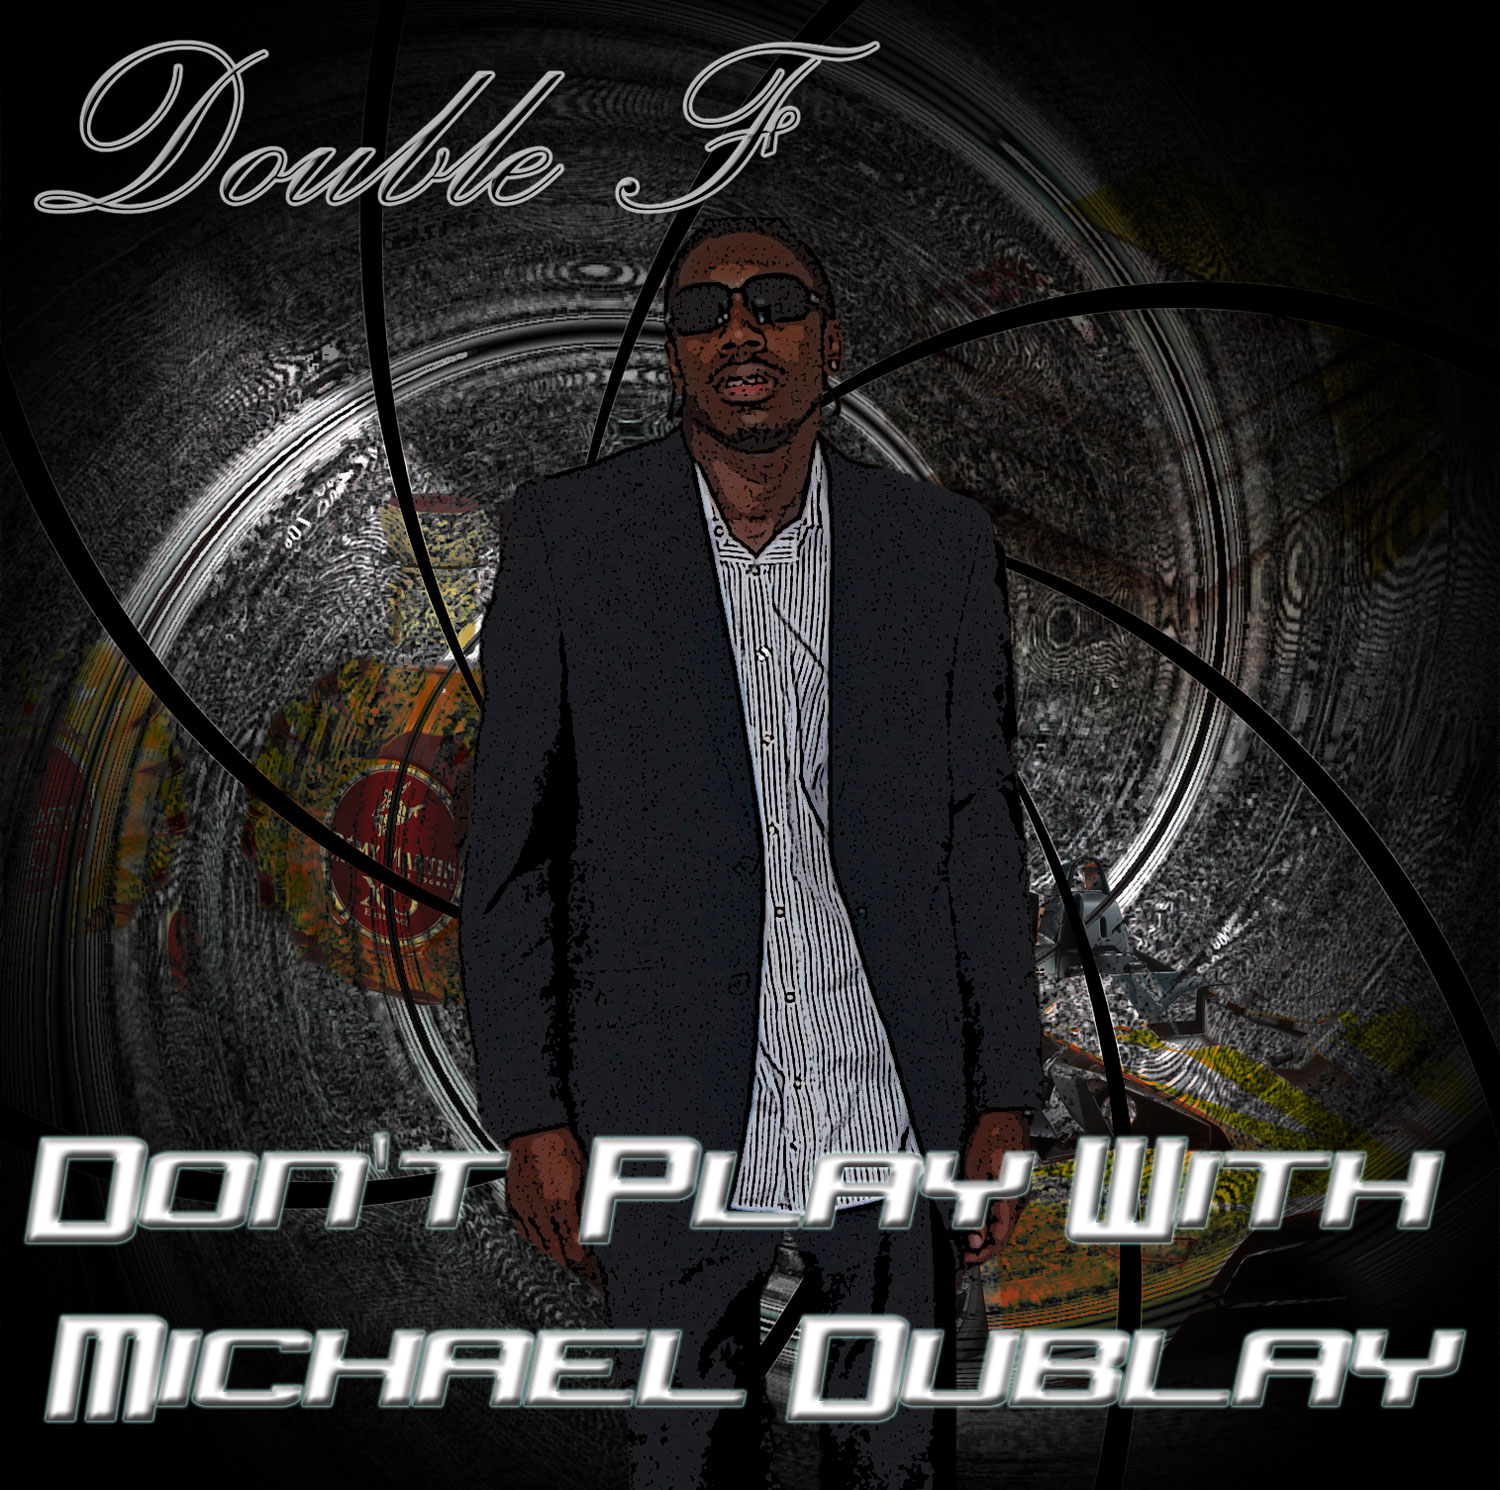 Don't Play With Michael Dublay